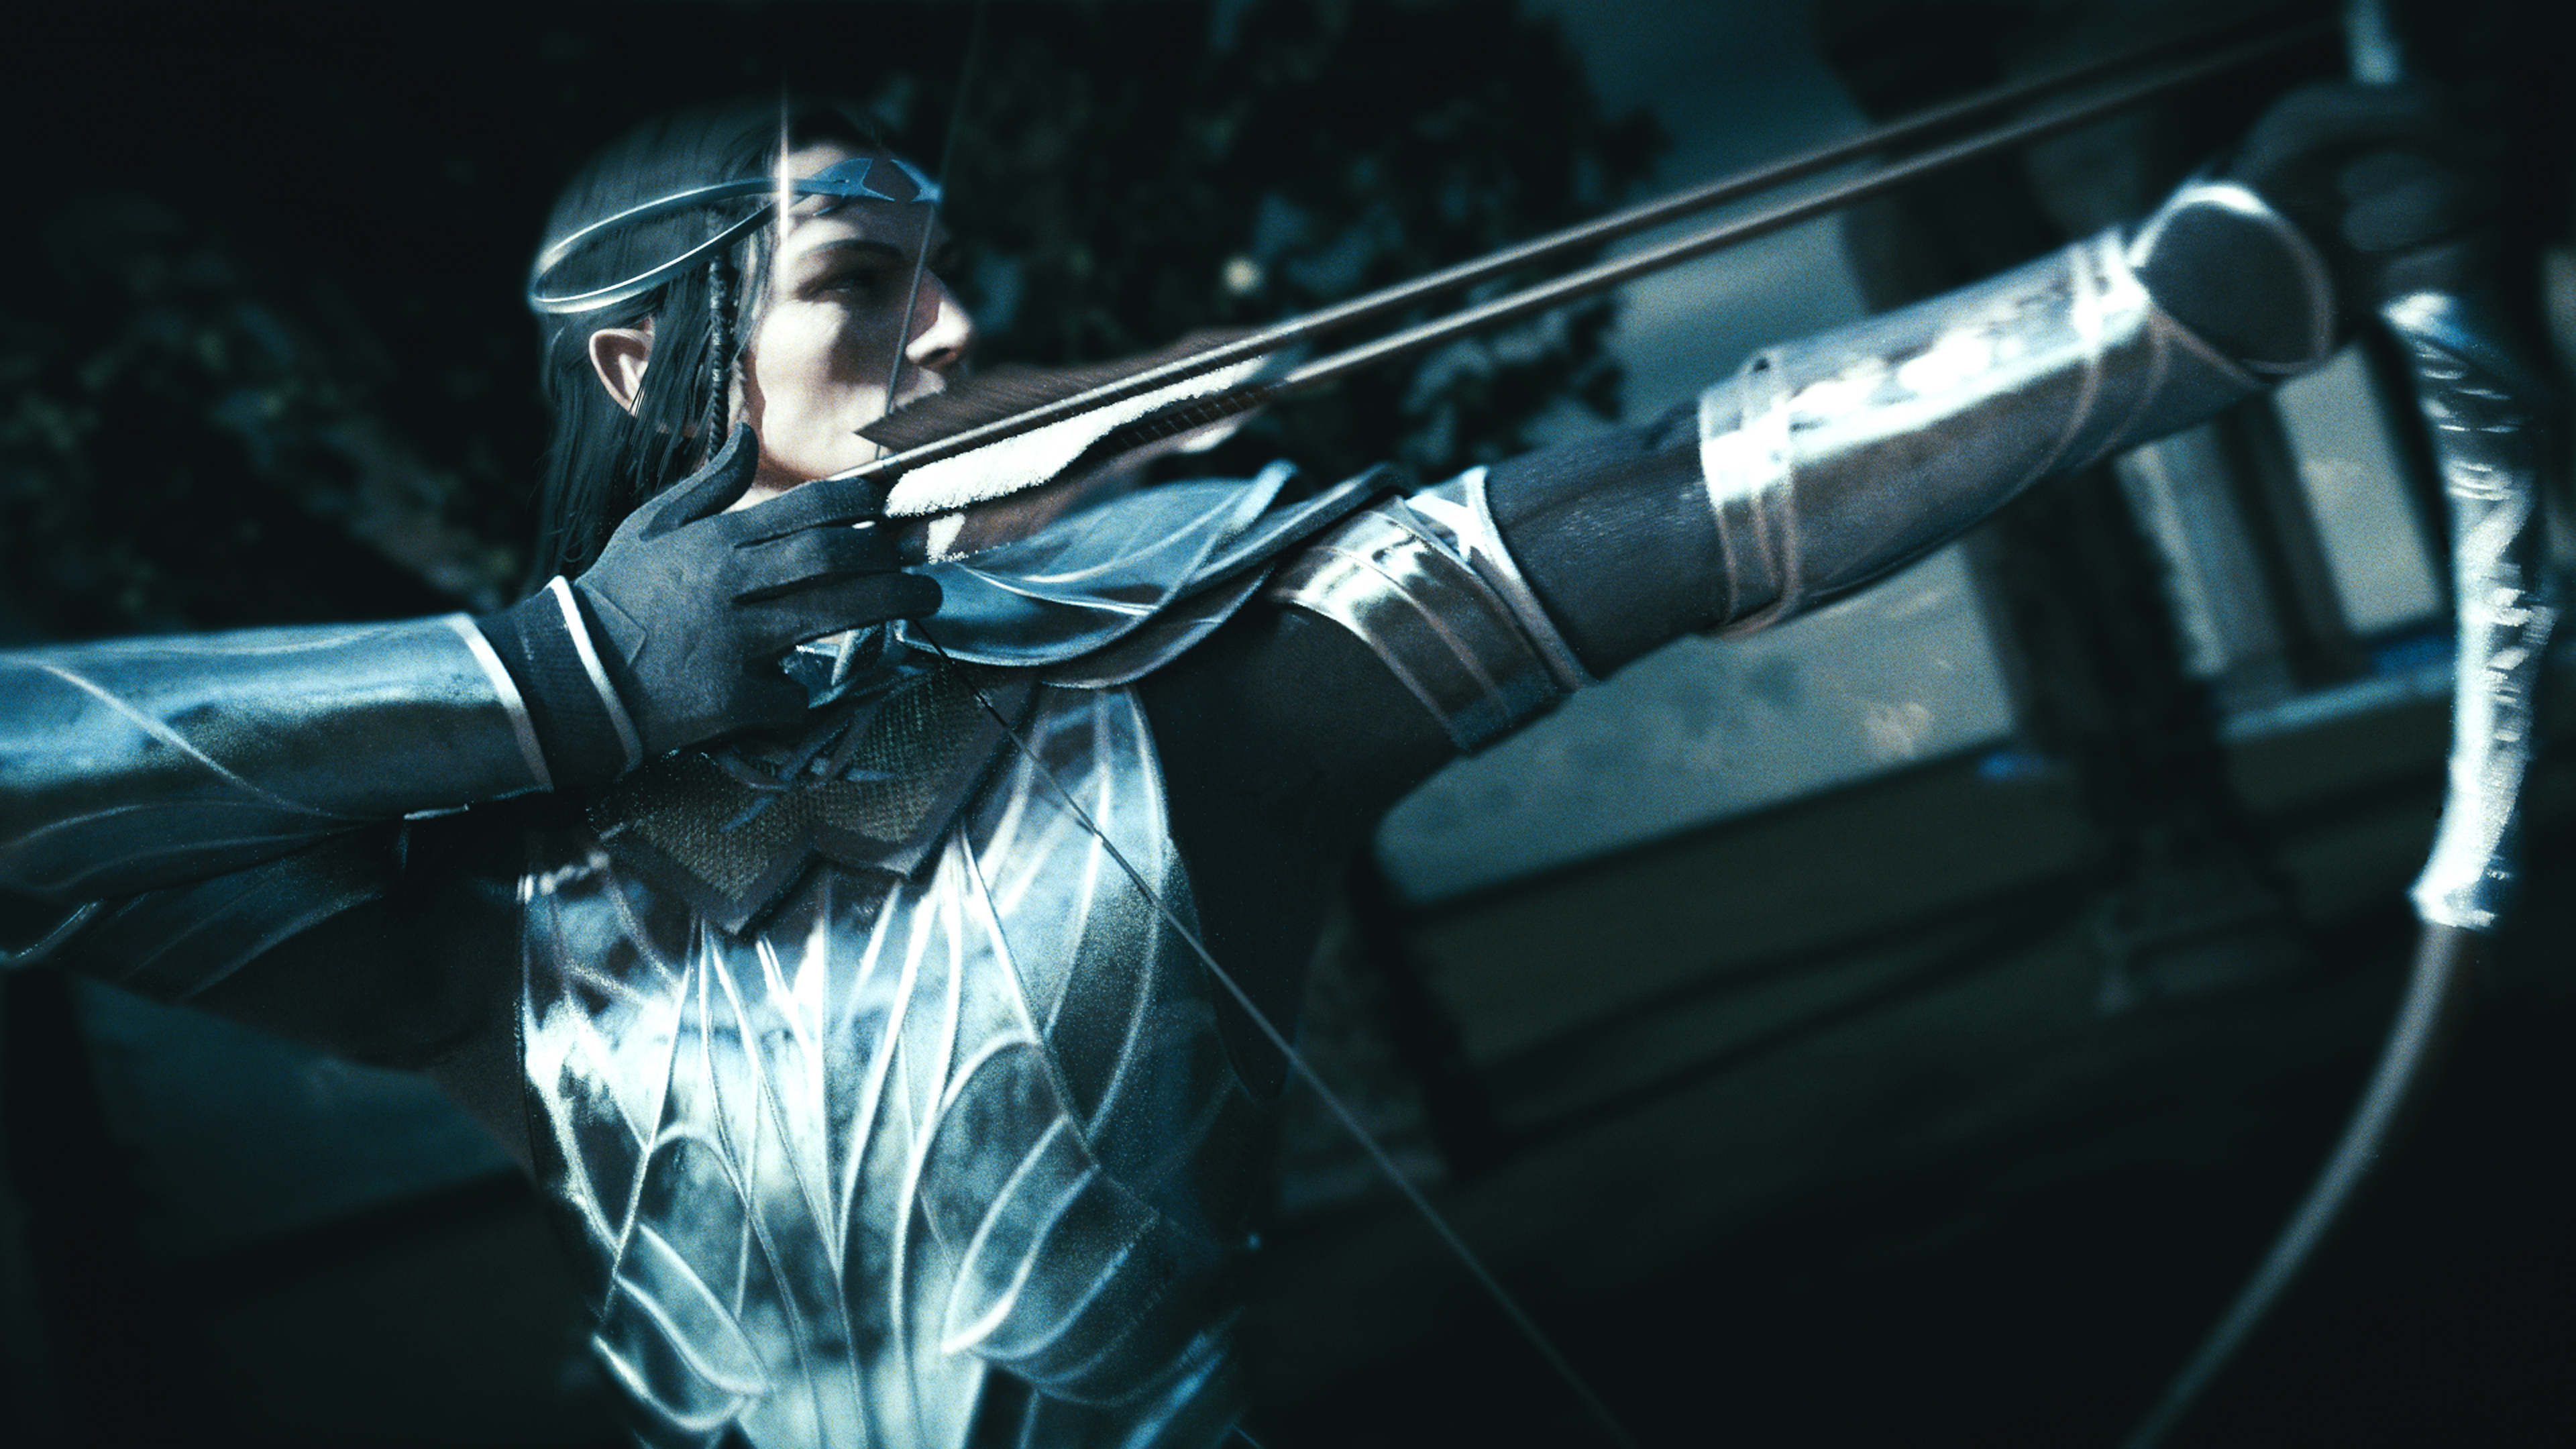 Lord Of The Rings Shadow Of War Celebrimbor